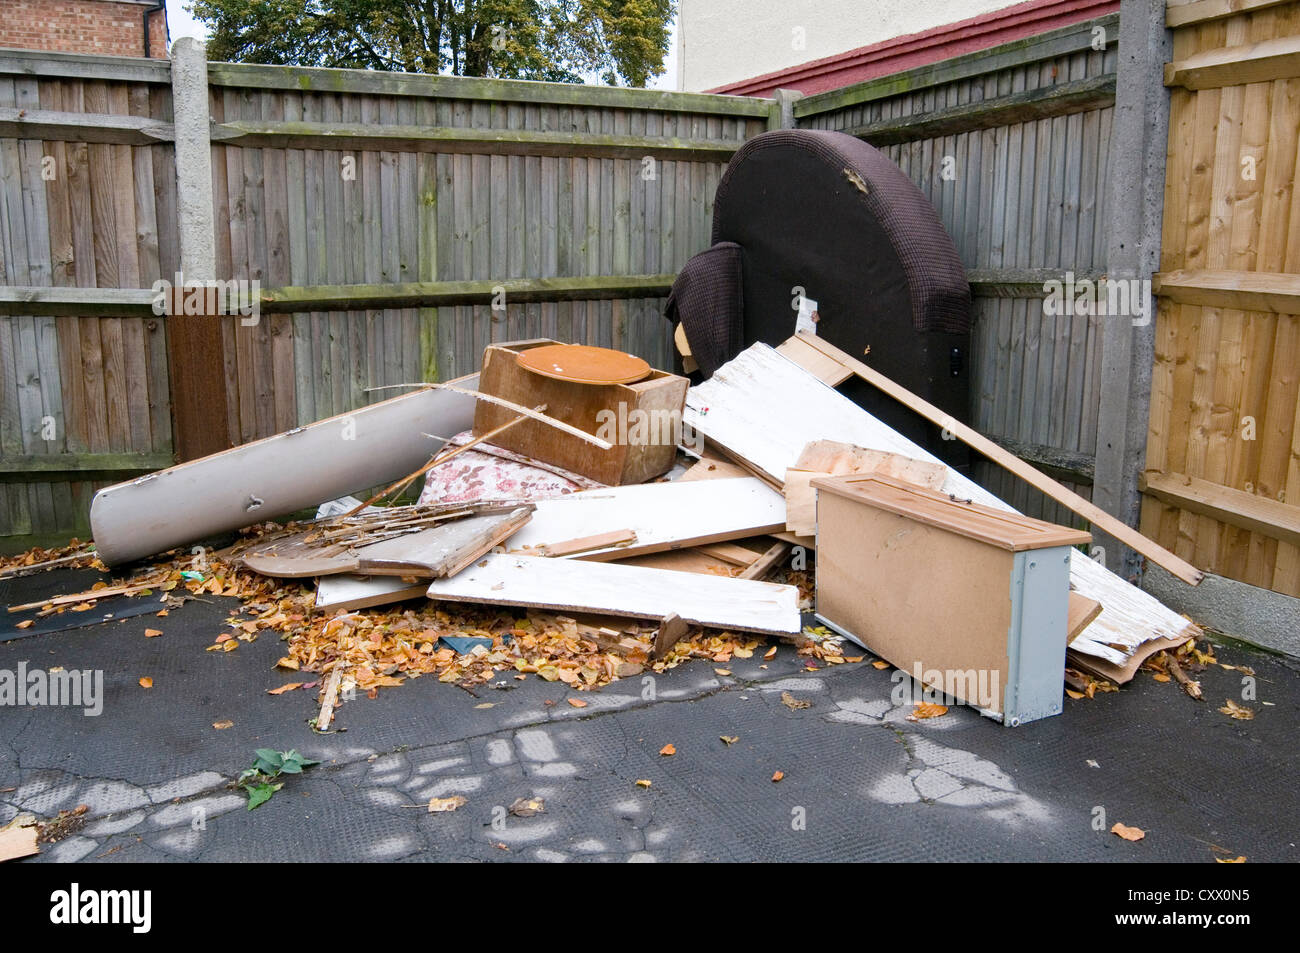 fly tipping flytipping rubbish dump dumping illegal unauthorized - Stock Image